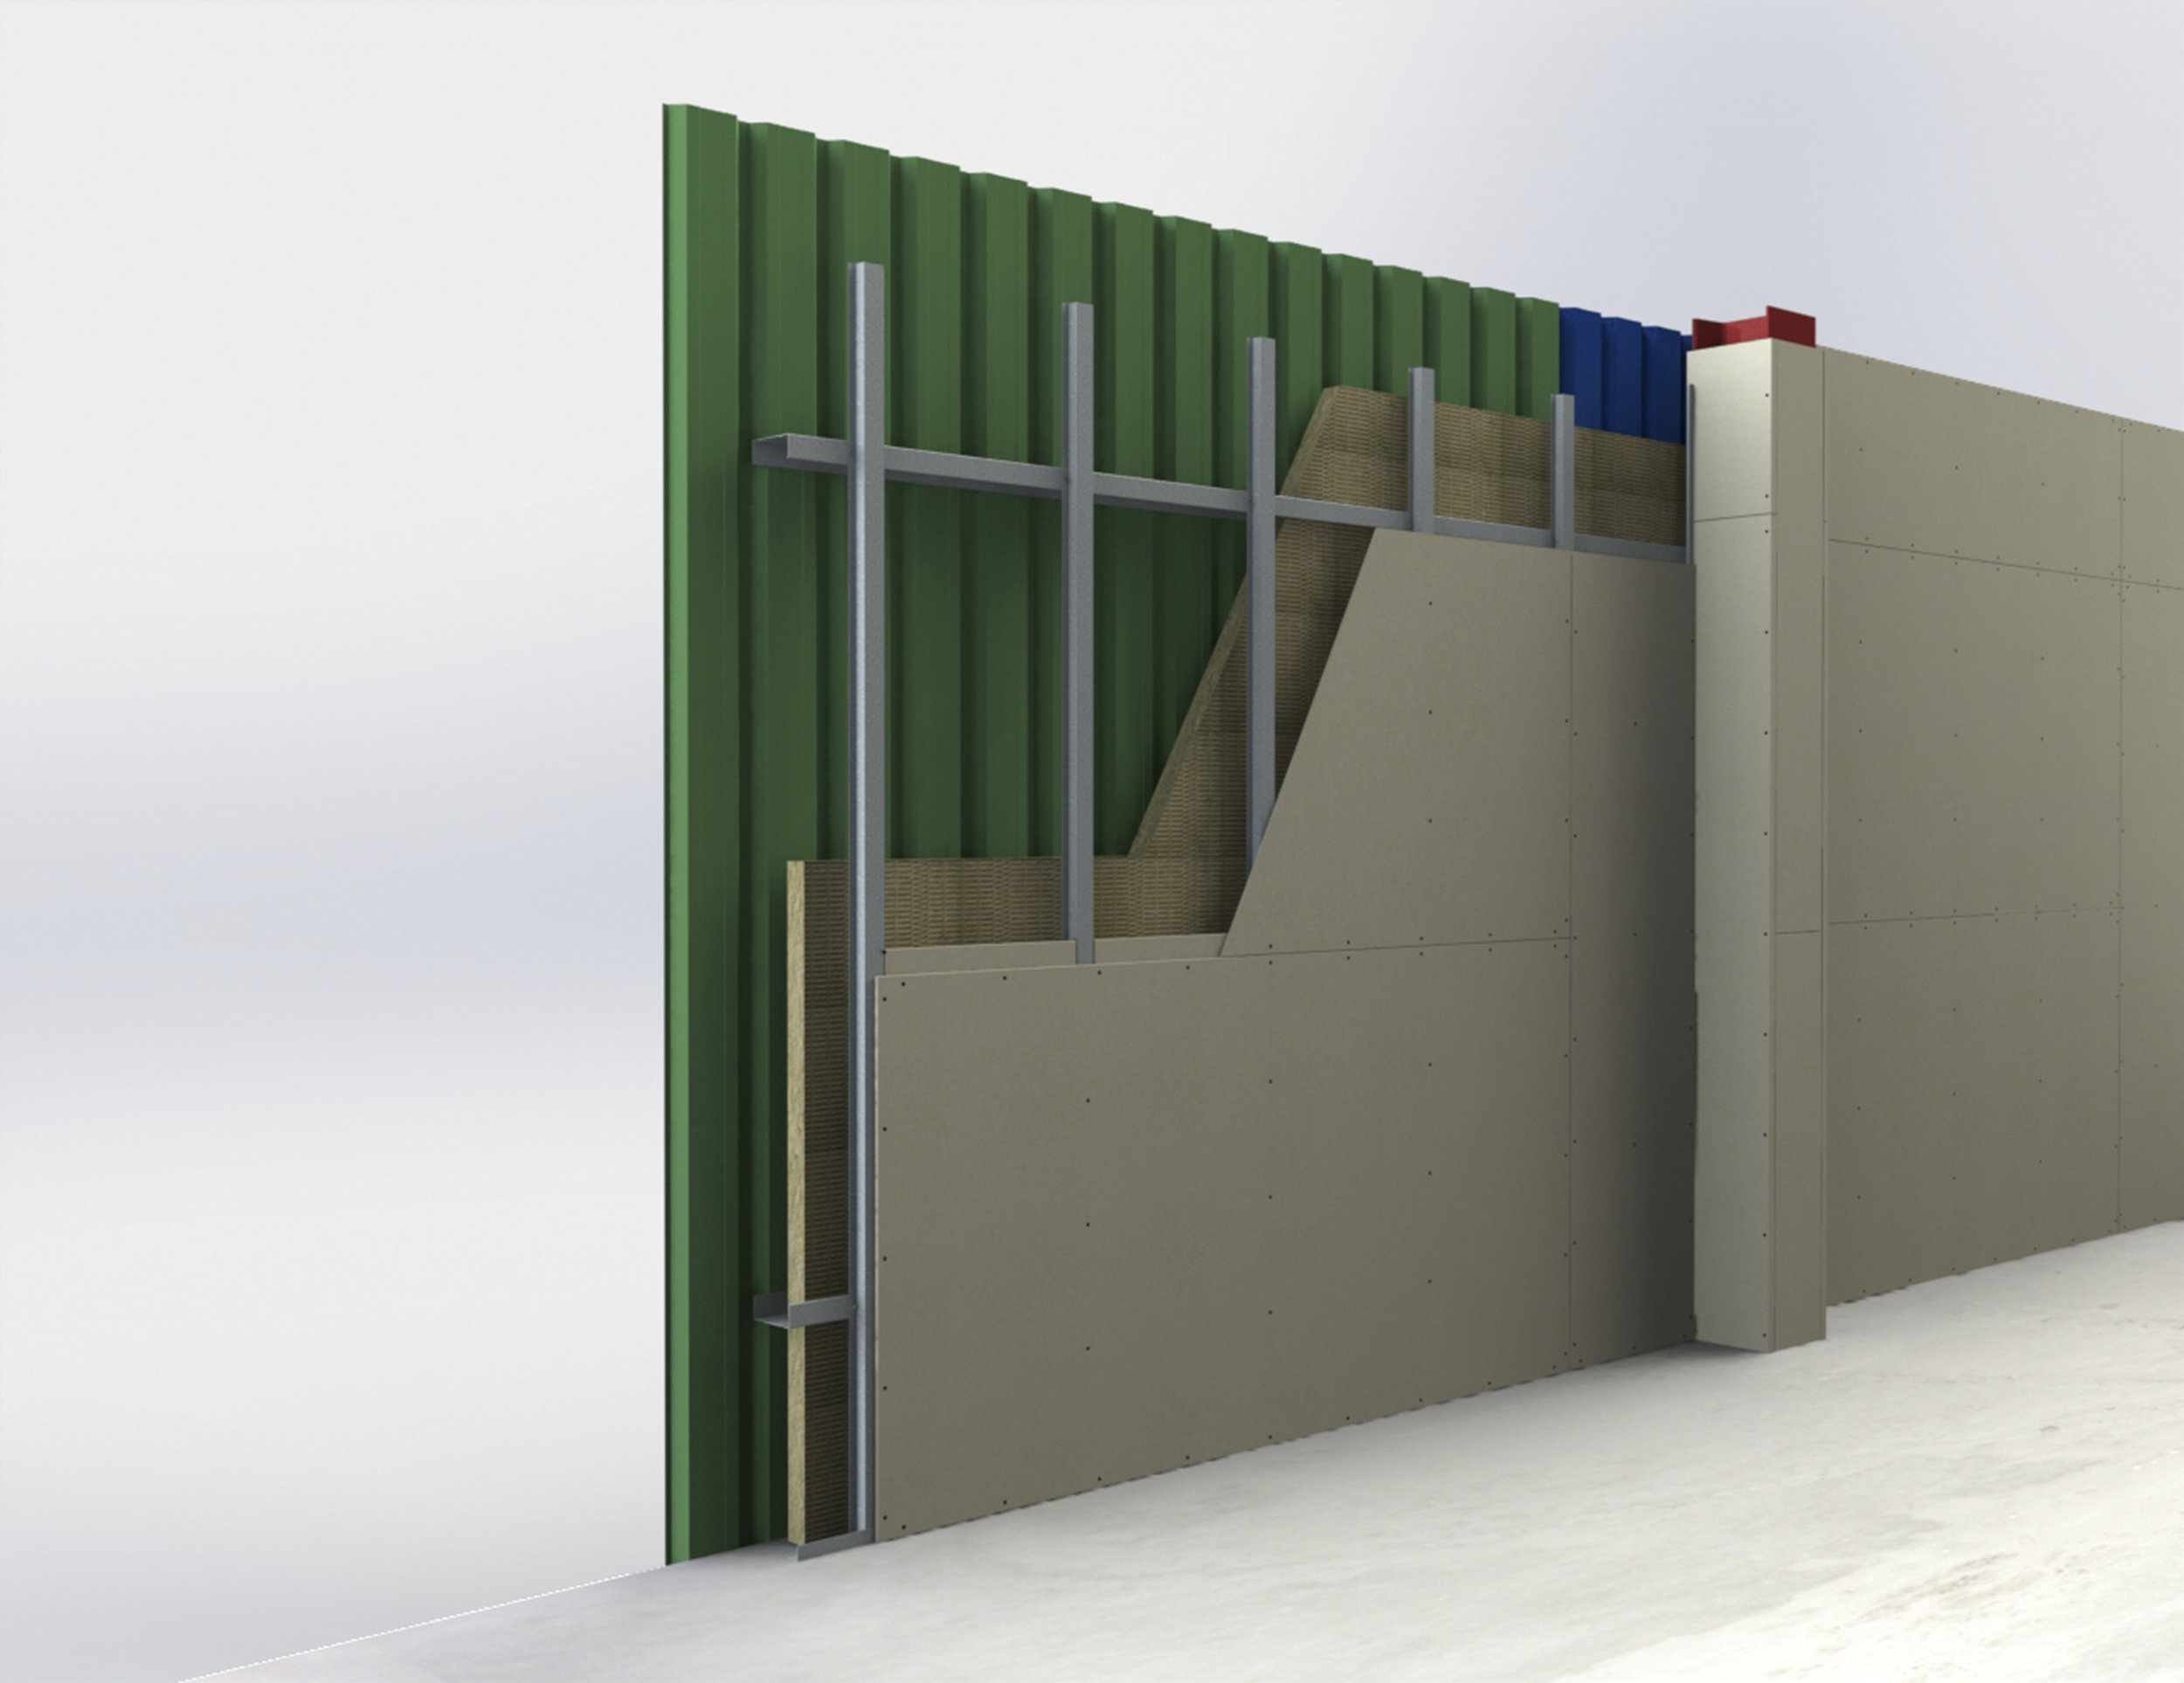 Asse External Wall step 1 camera 2 PS C.jpg